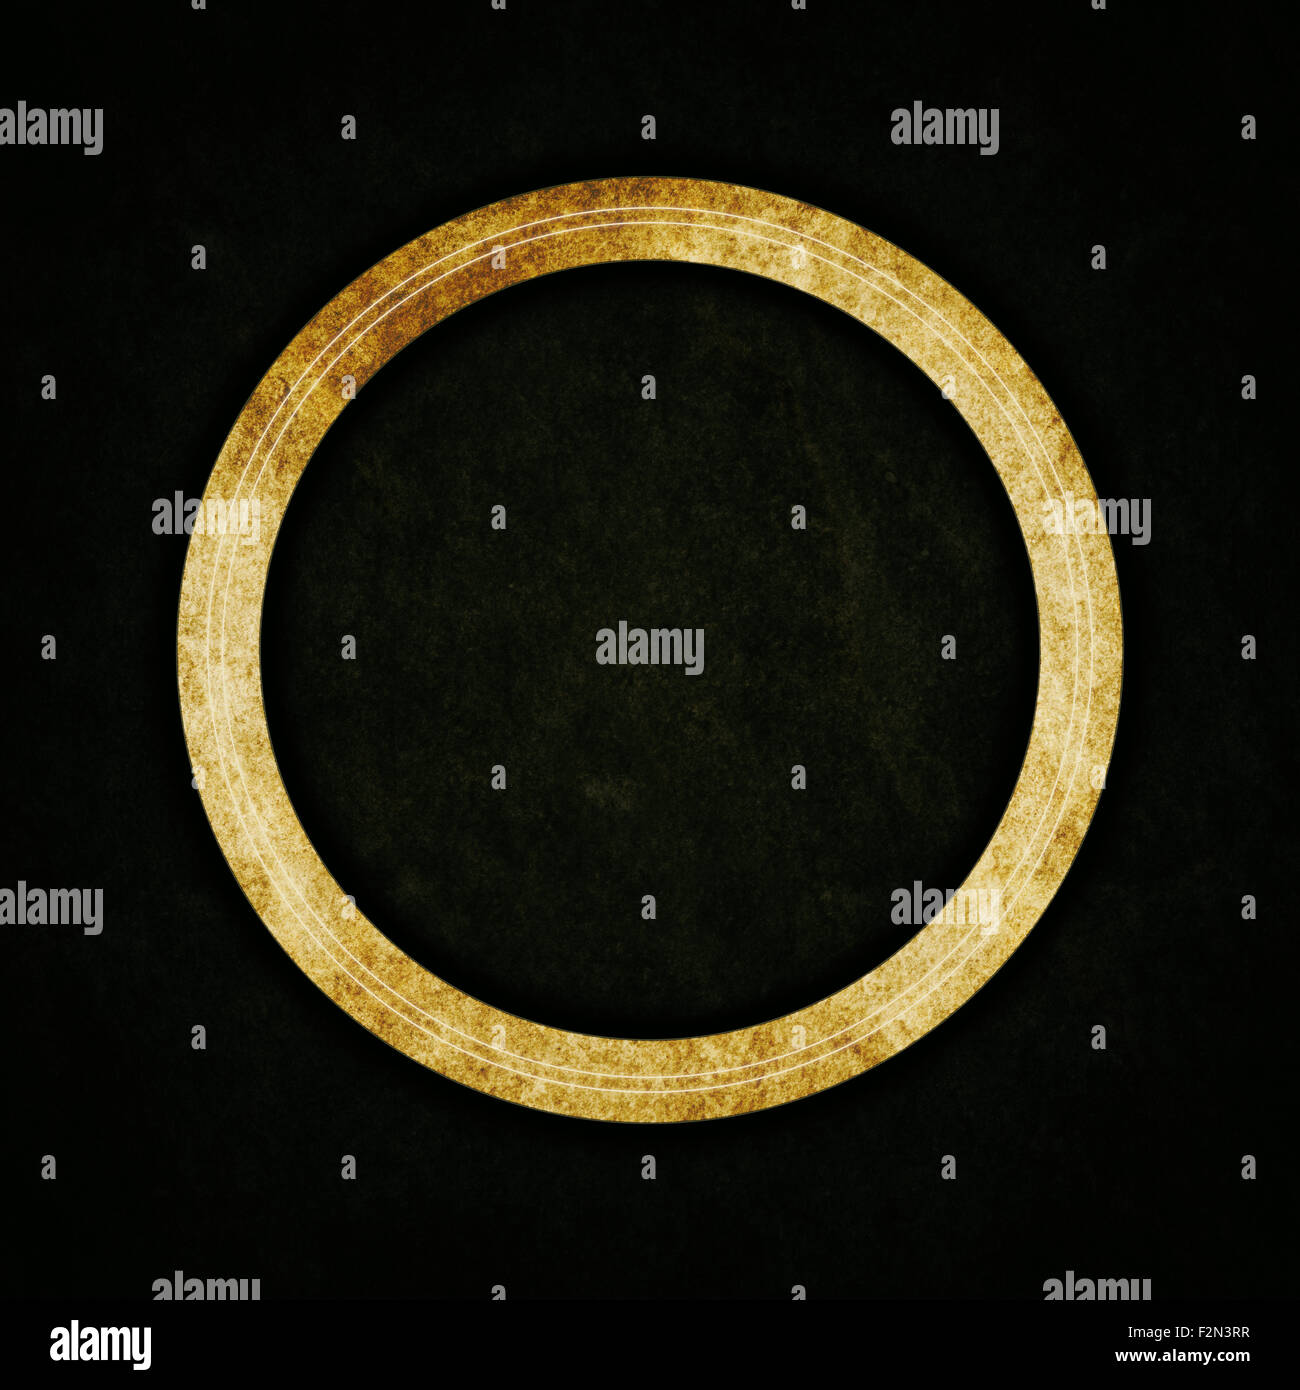 Antica golden ring su abstract background texture Immagini Stock